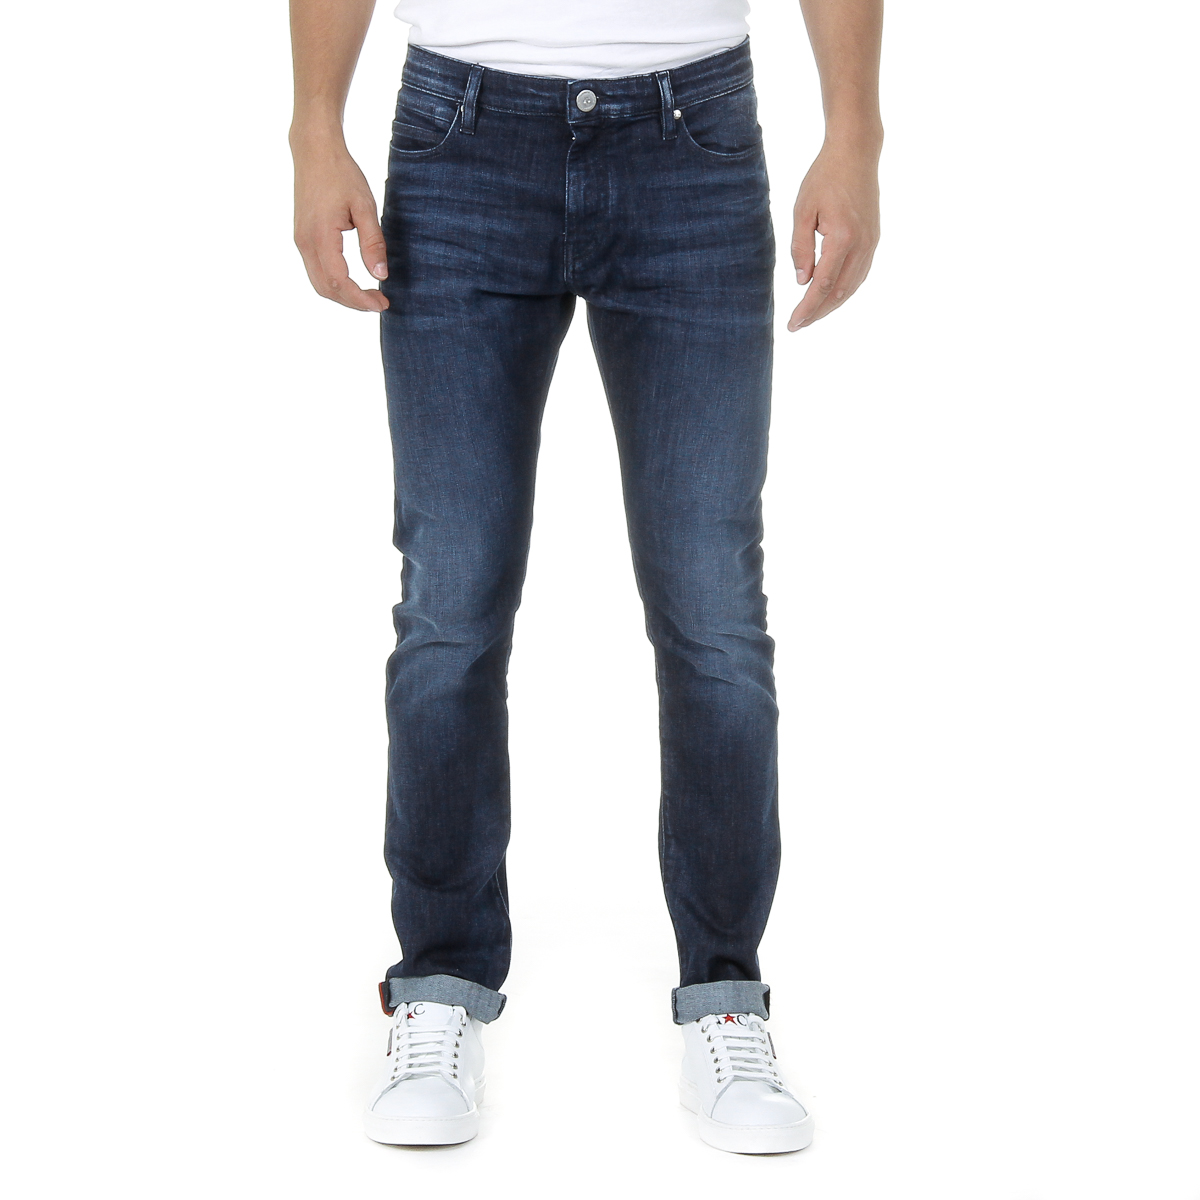 Primary image for Andrew Charles Mens Jeans Denim THOMAS